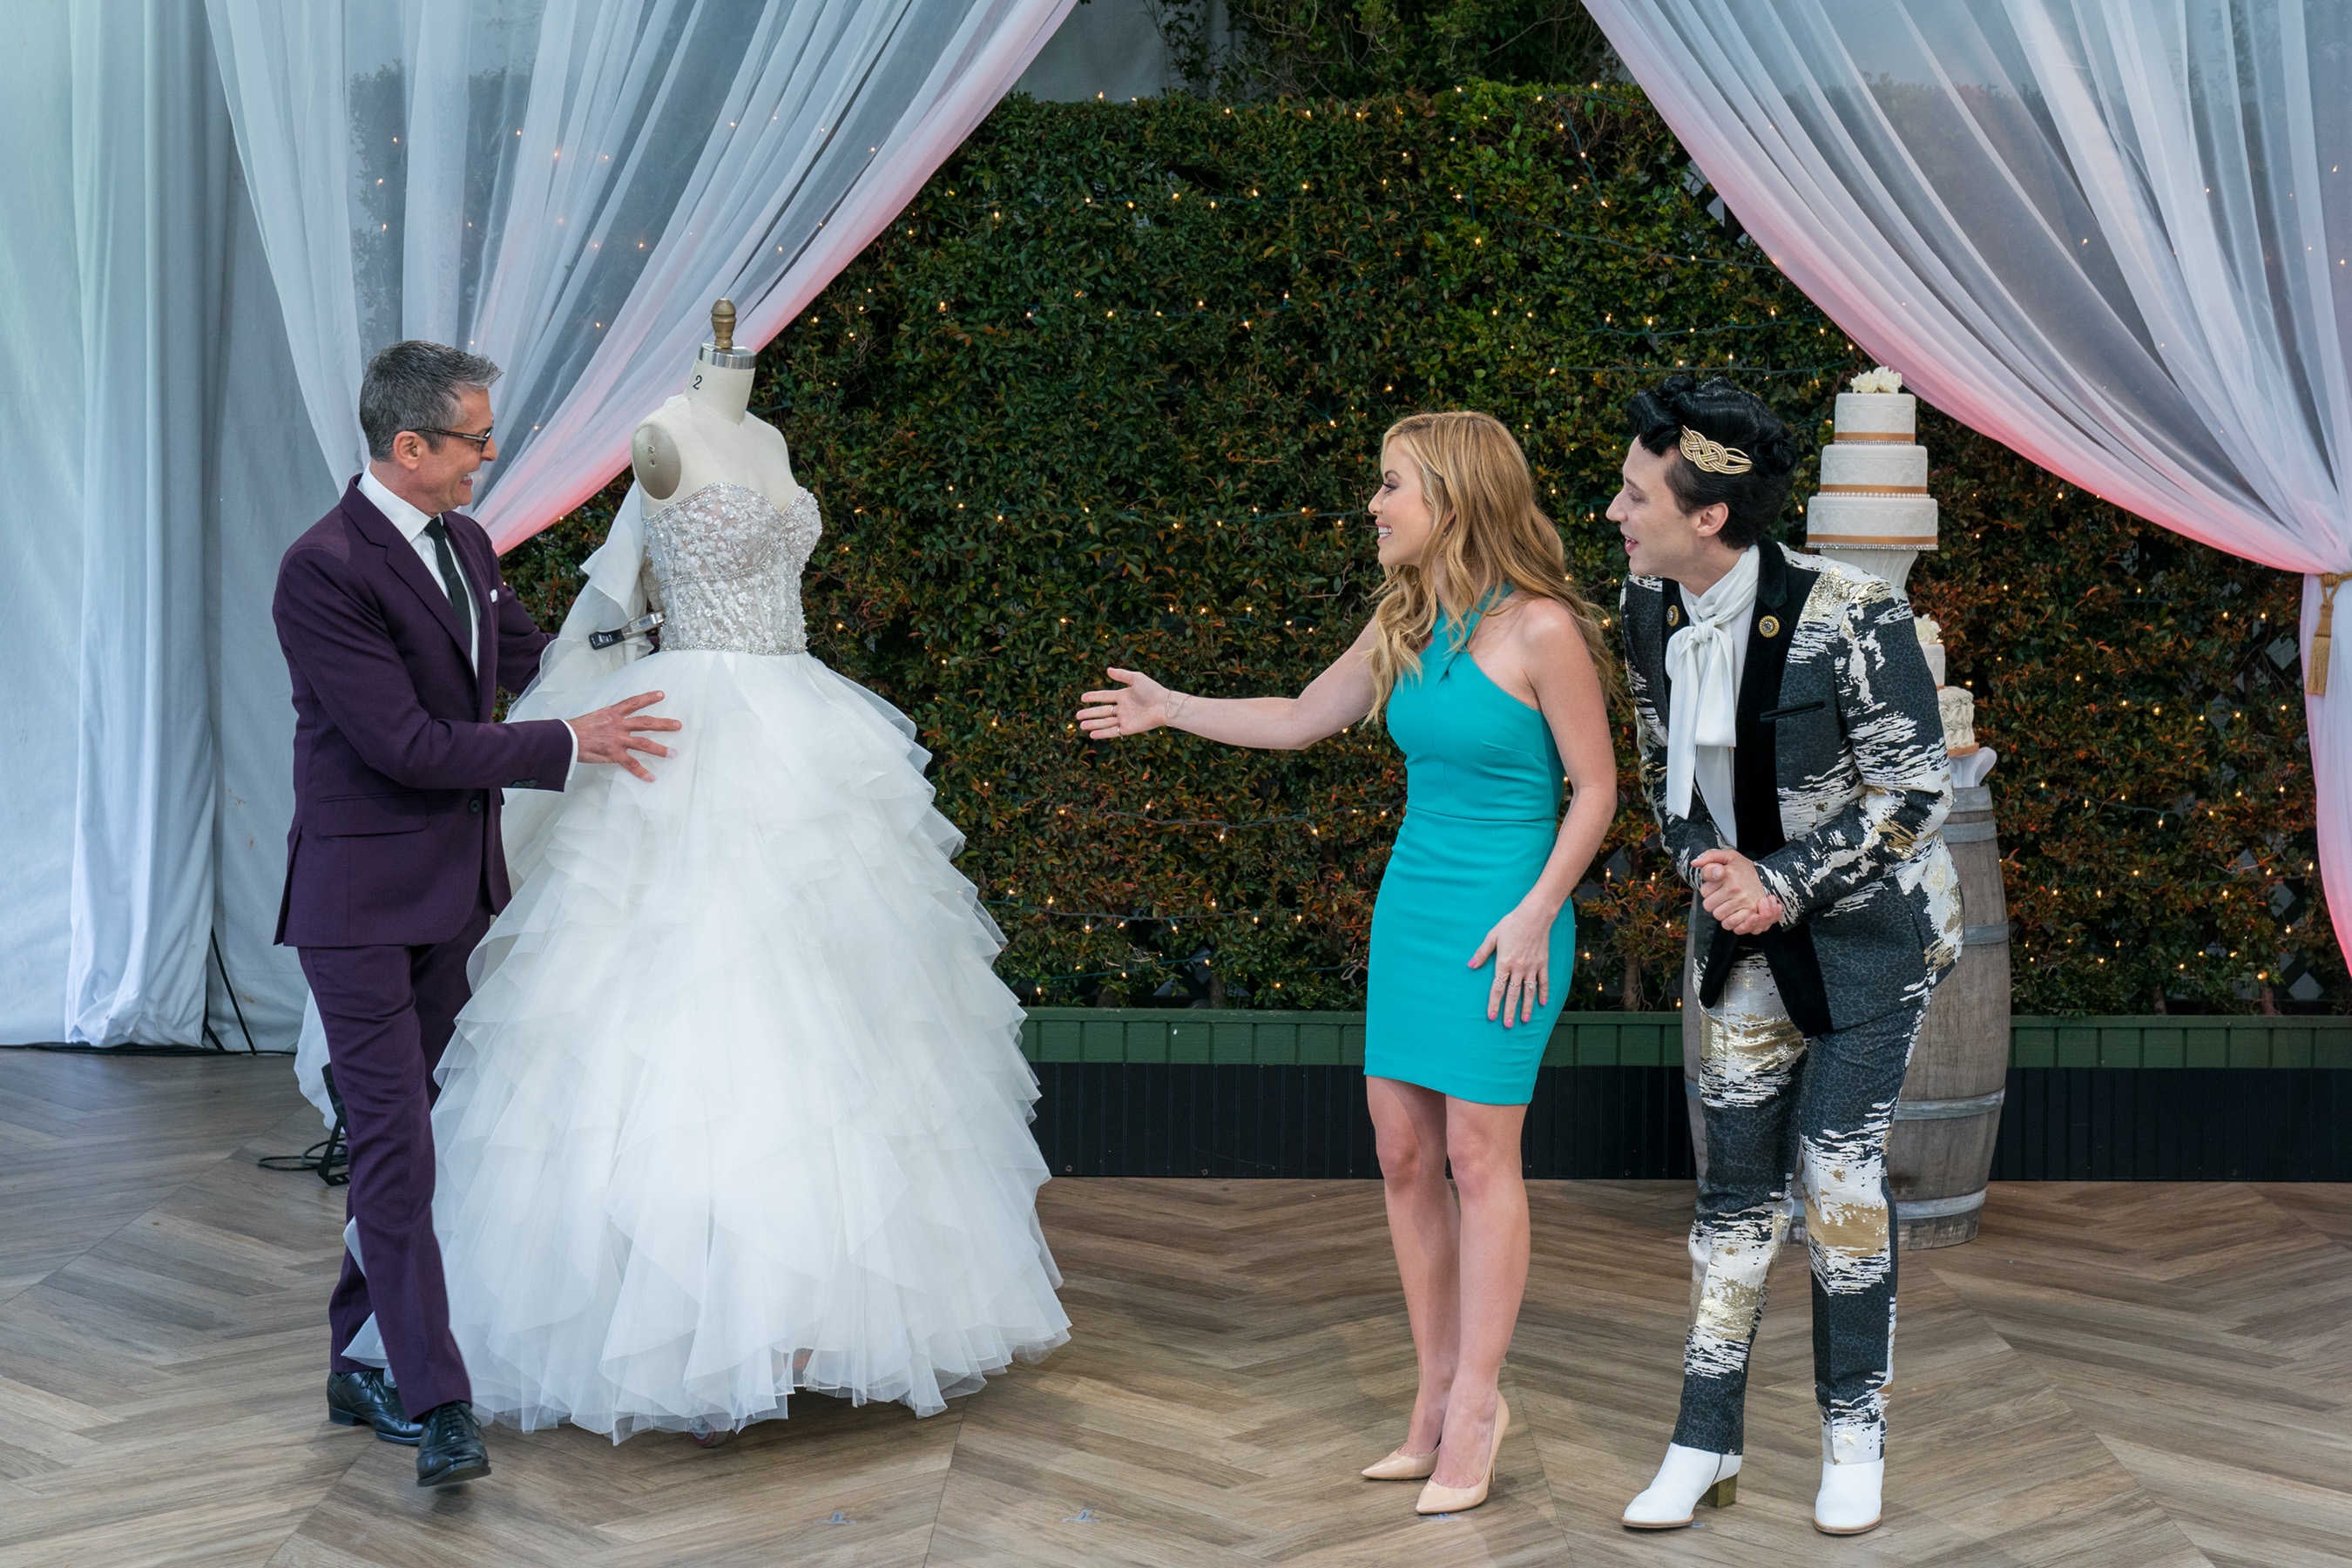 Randy Fenoli with Tara Lipinski and Johnny Weir, on Food Network's Wedding Cake Championship